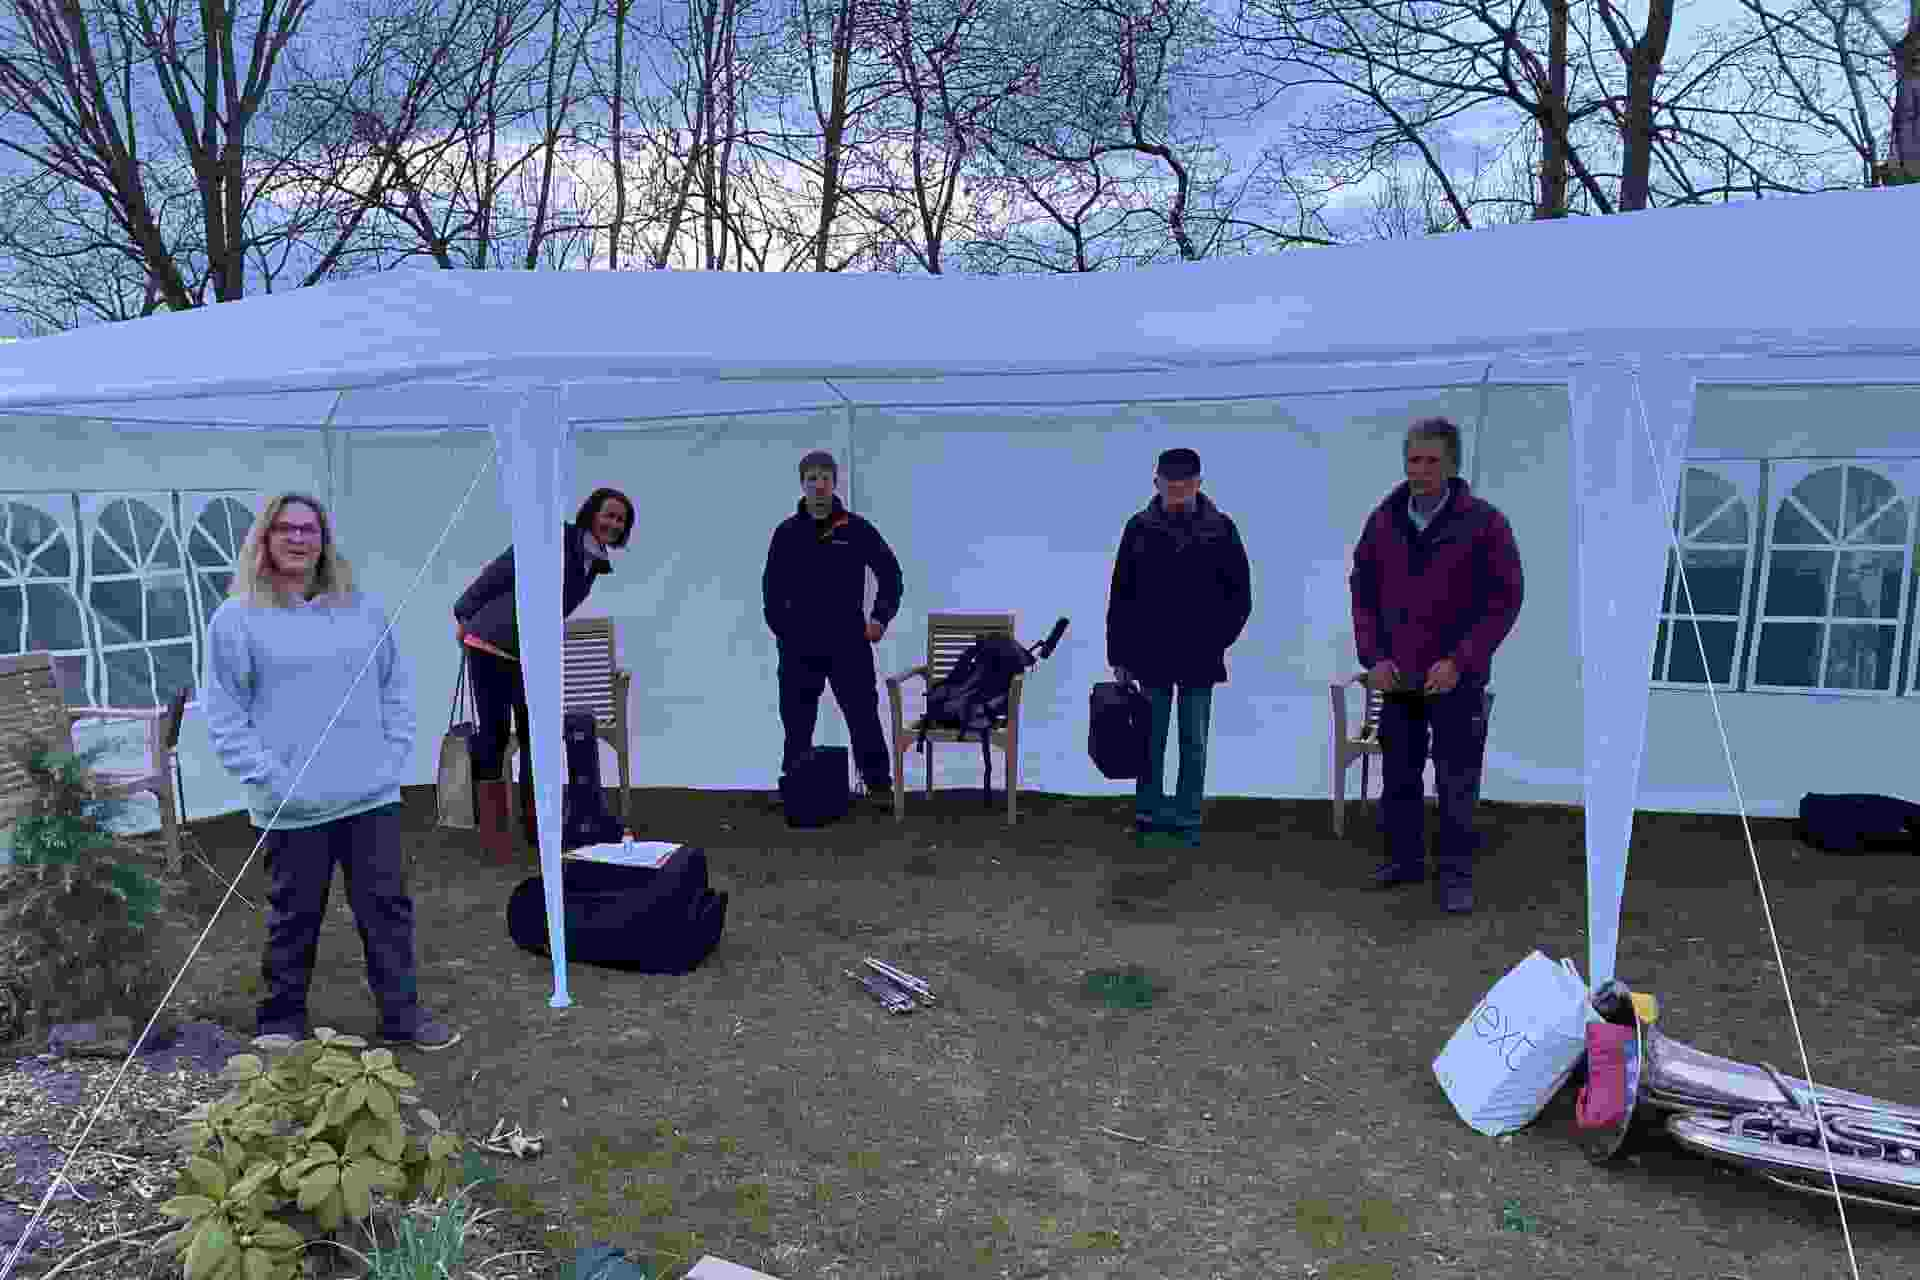 OBB Group of 6-Playing Outdoors 13 Apr 2021